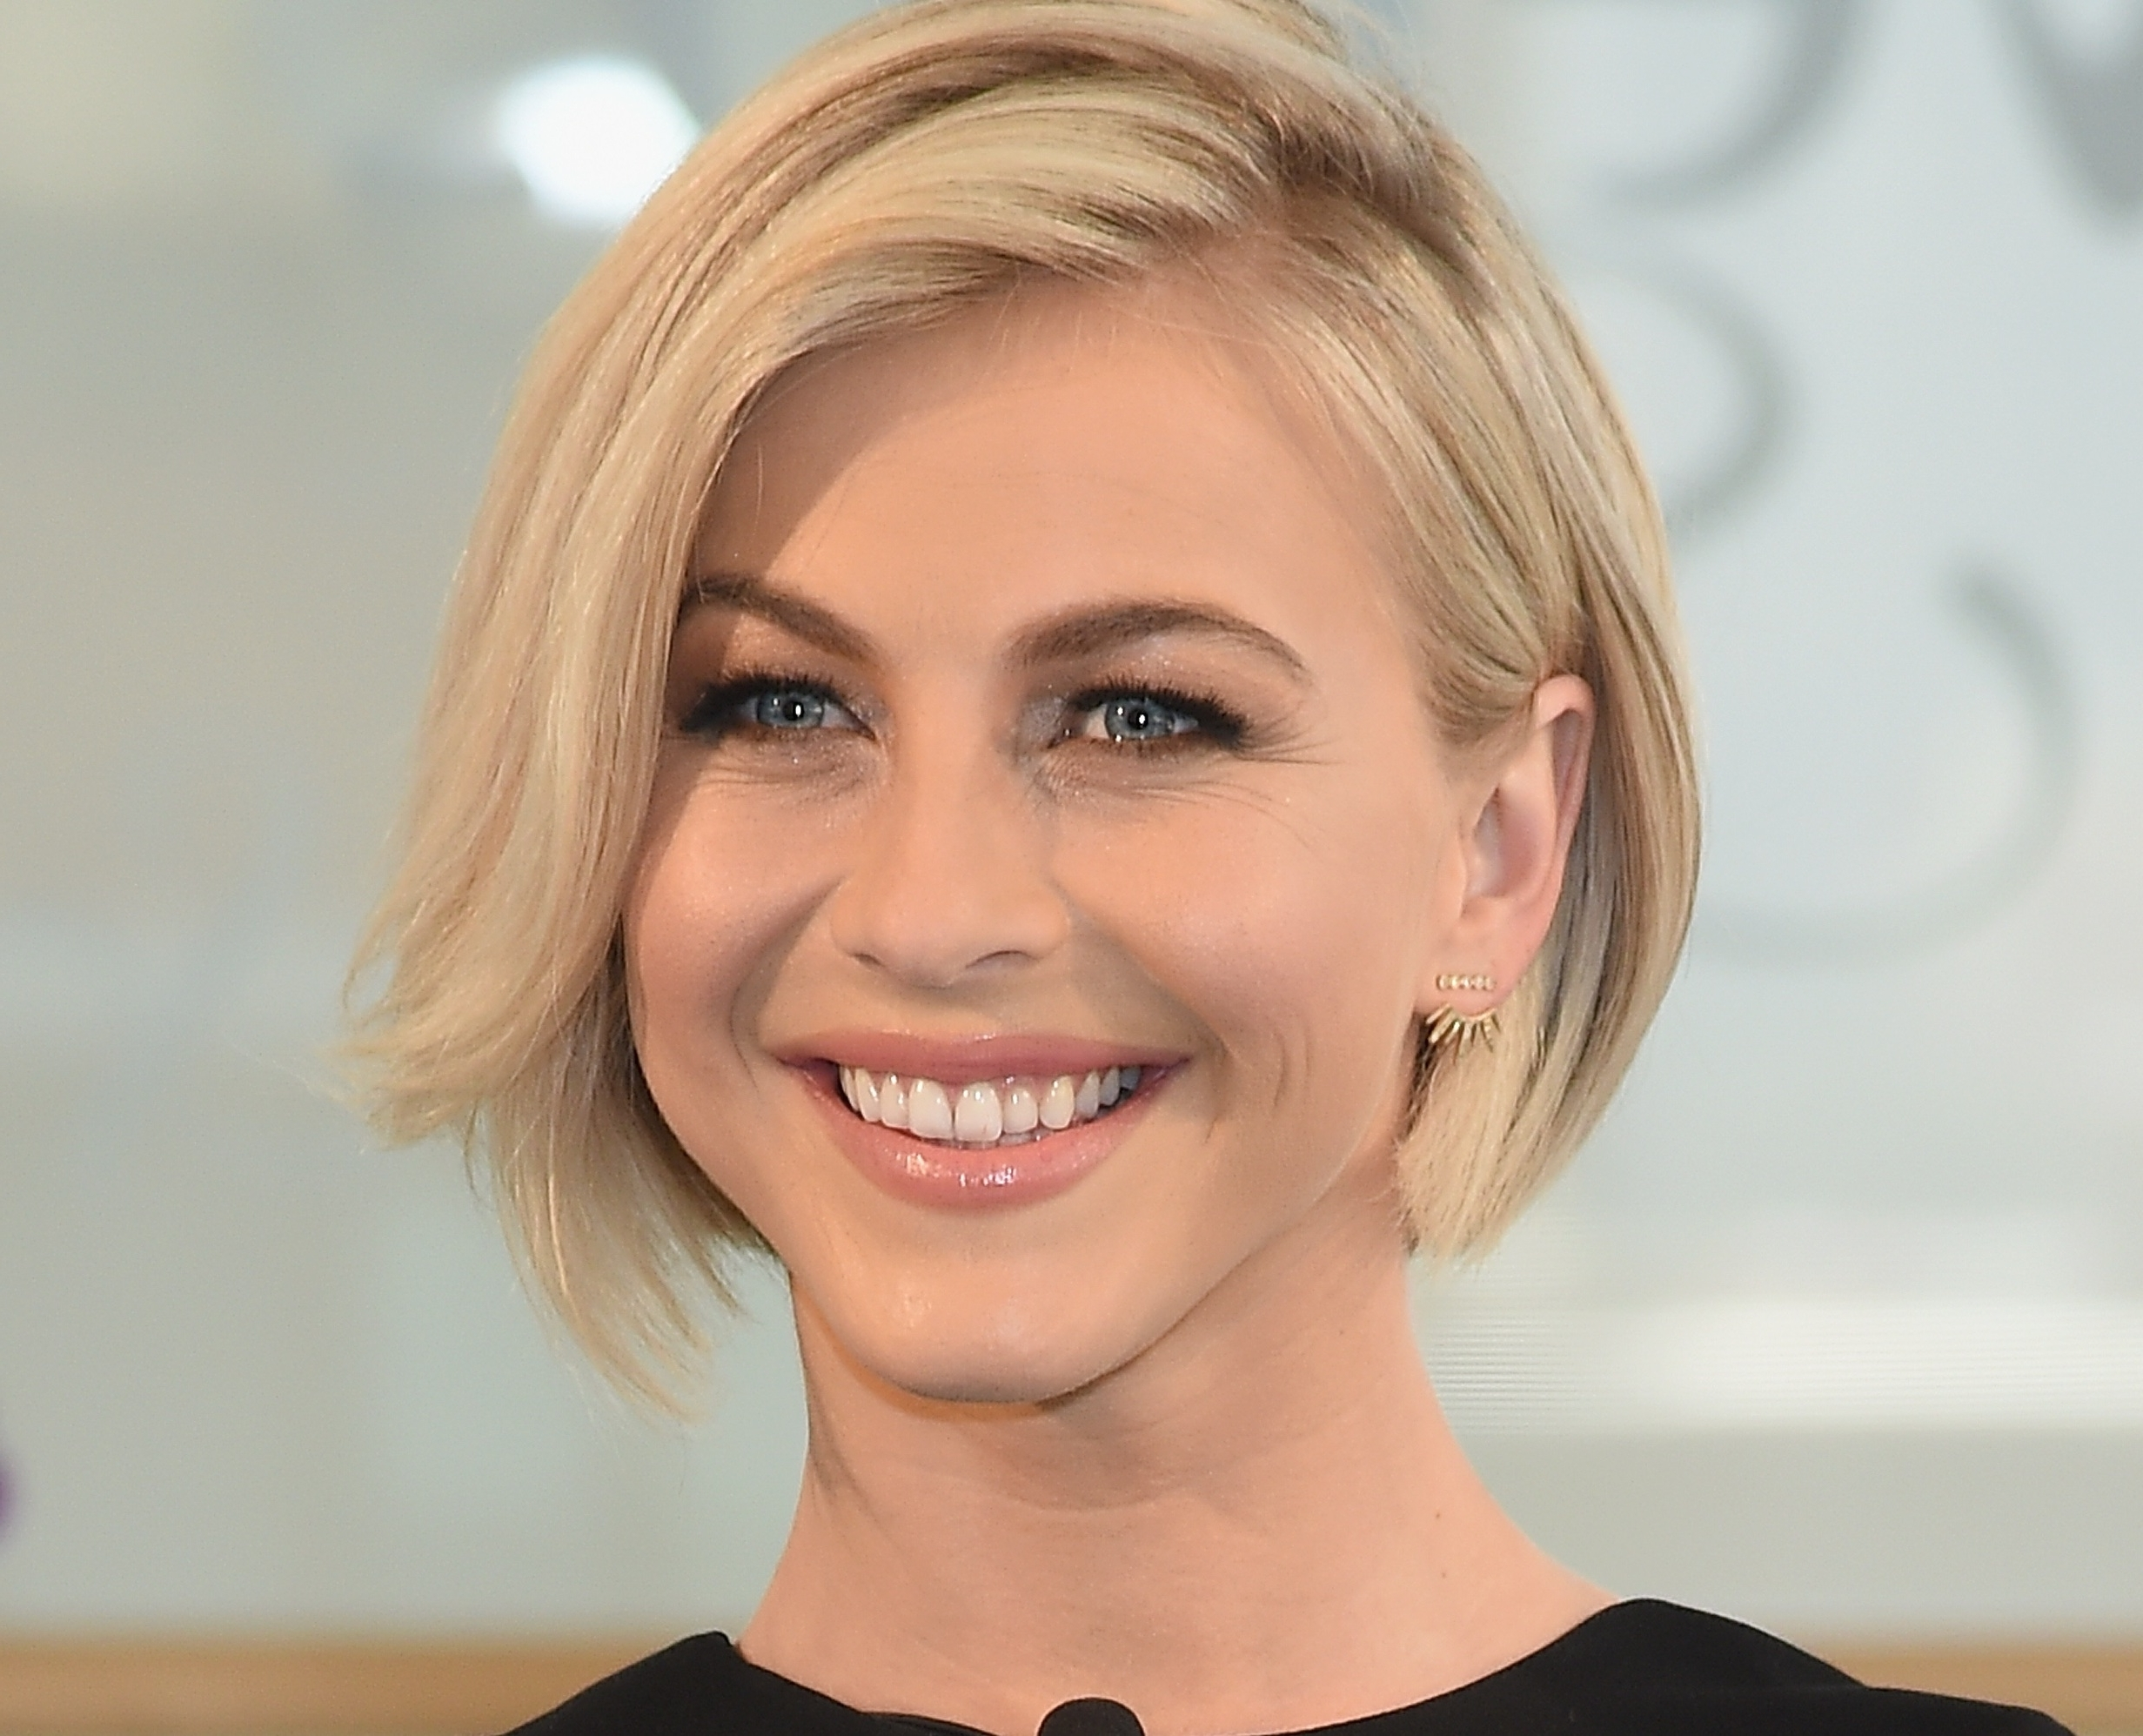 Julianne Hough Hair Dirty Grandpa - Google Search | Hair Styles with regard to 2018 Julianne Hough Pixie Hairstyles